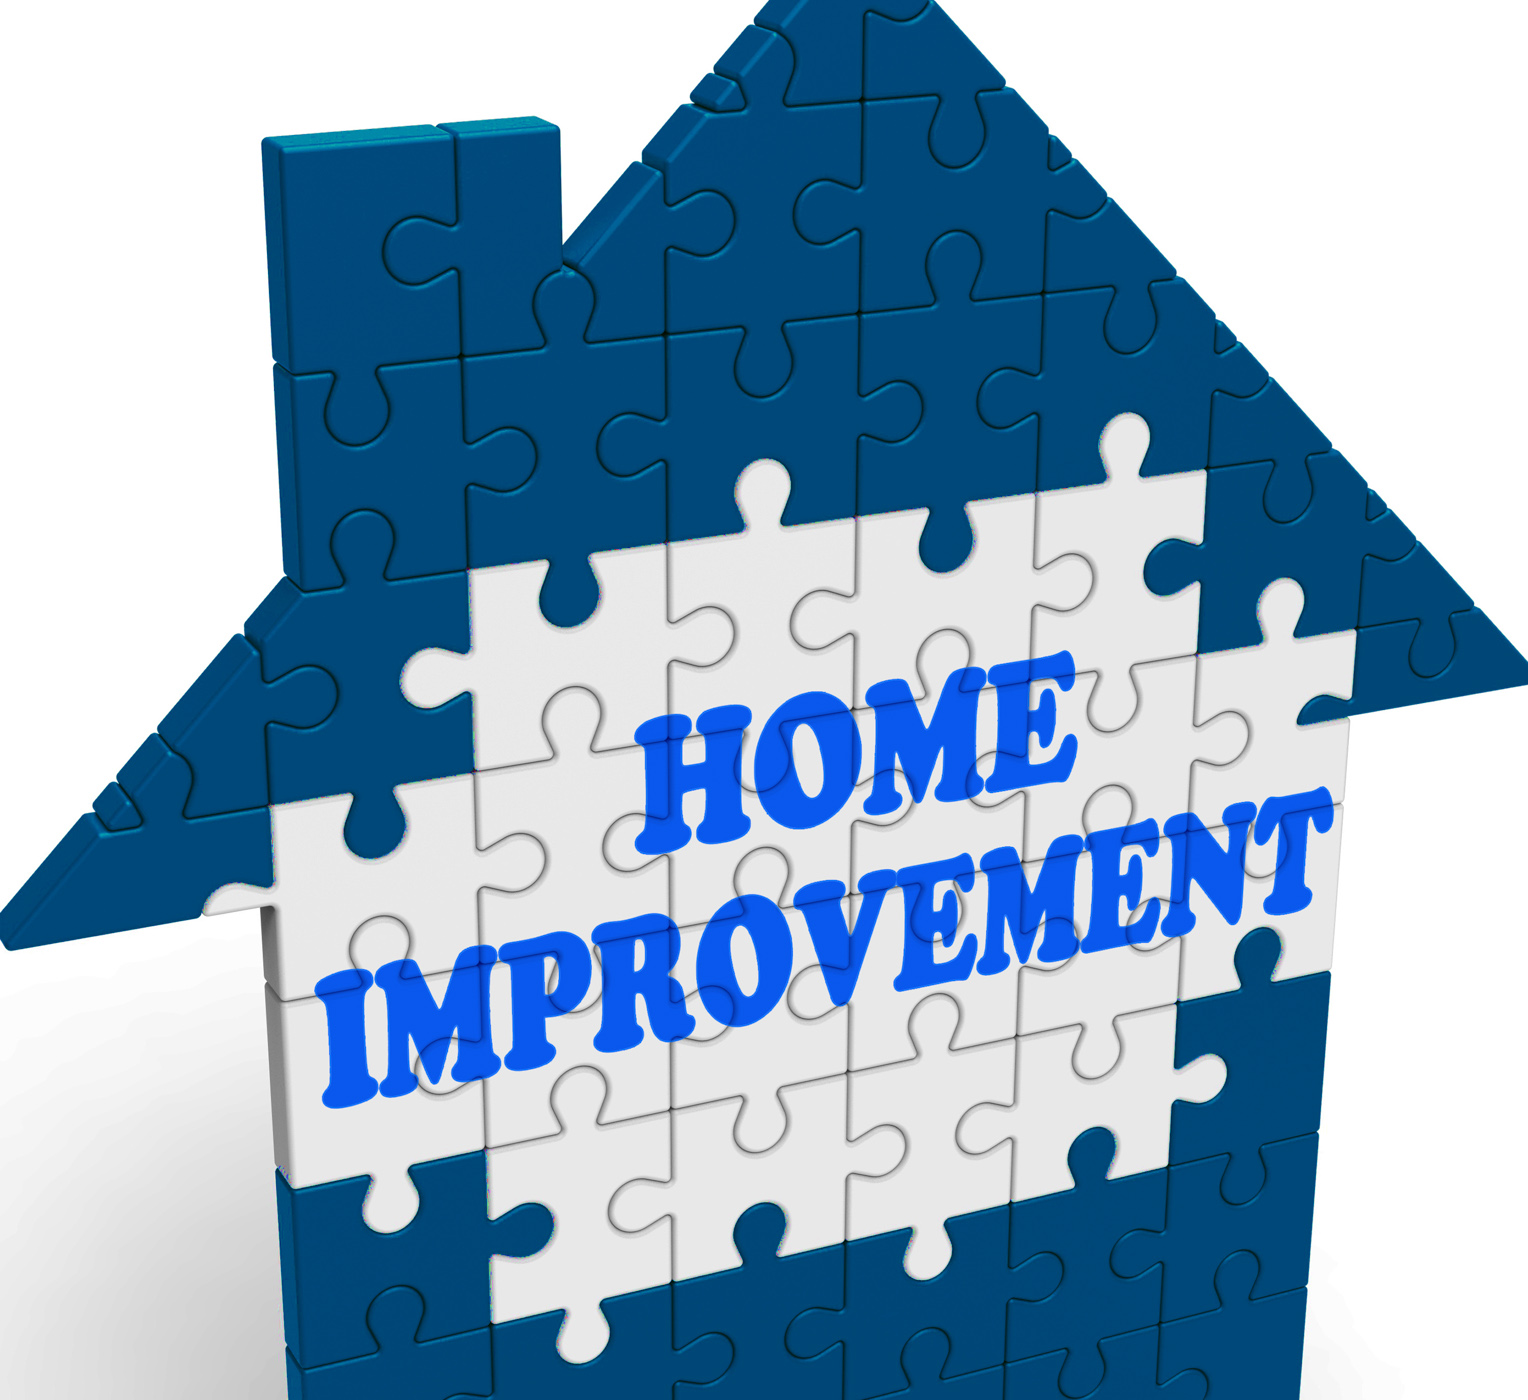 Home improvement house means renovate or restore photo